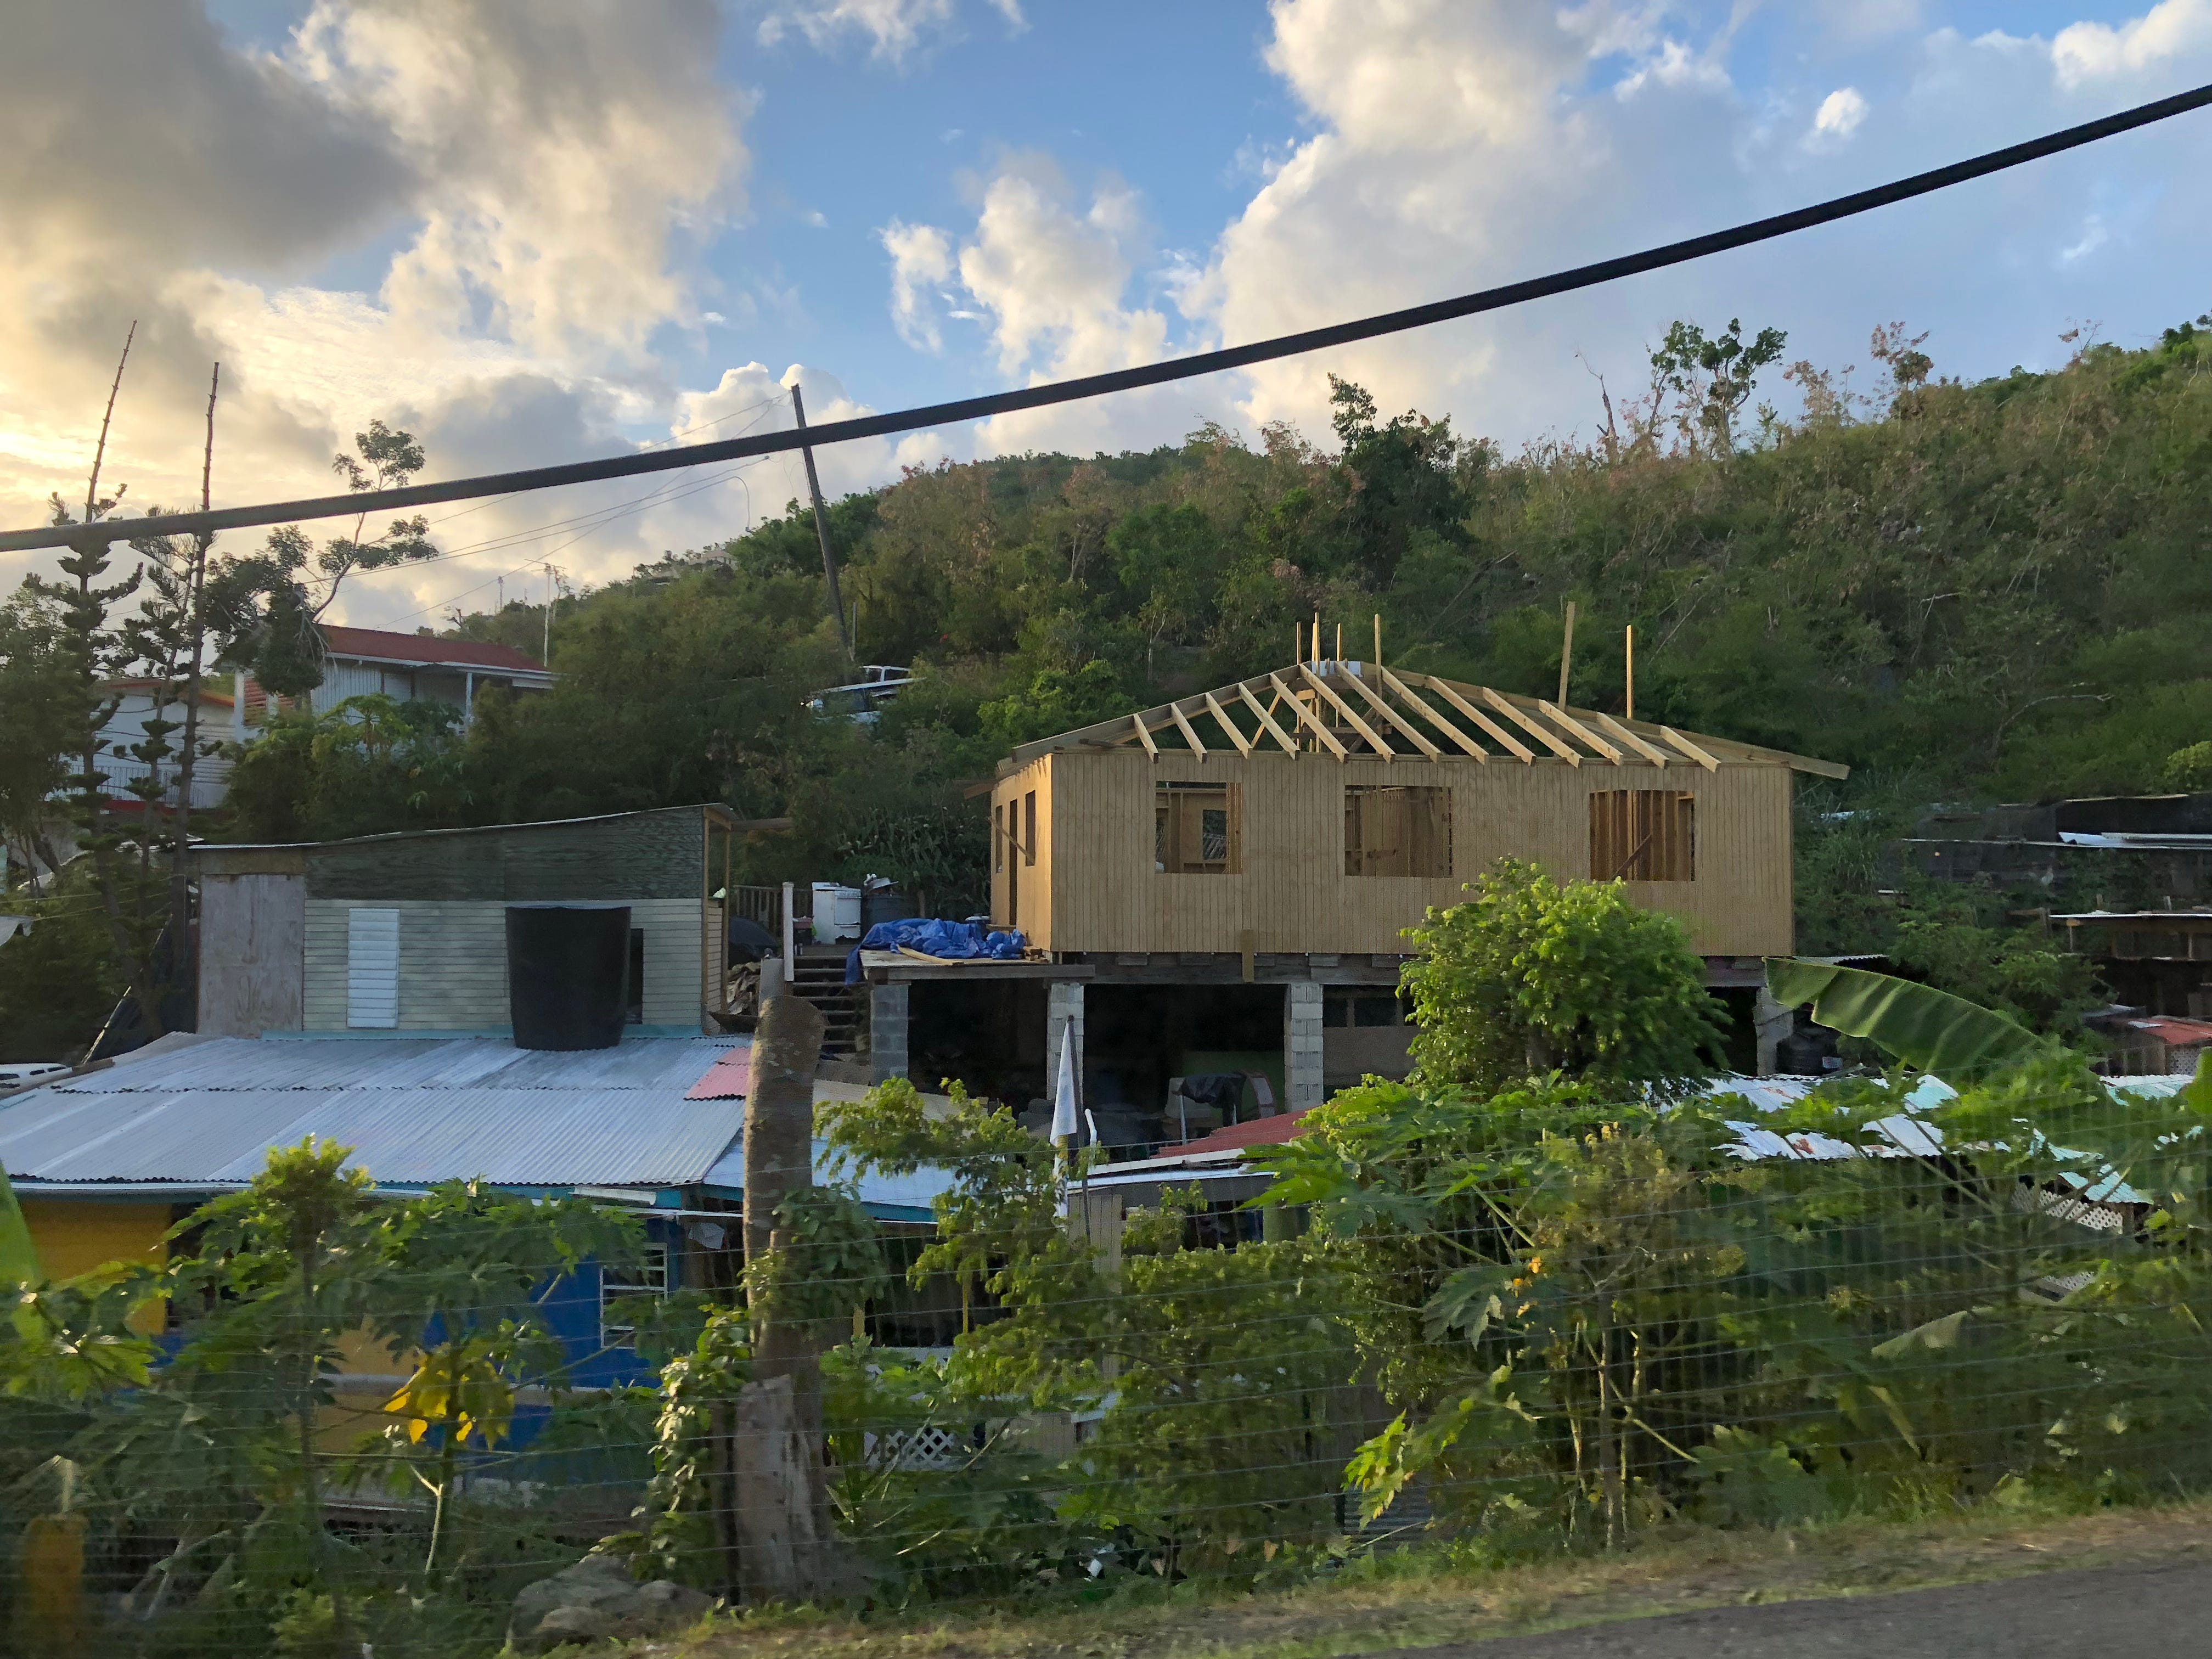 New homes are going up across St. John, thanks to a combination of FEMA money, Virgin Island officials and private groups such as Love for Love City and Love City Strong.